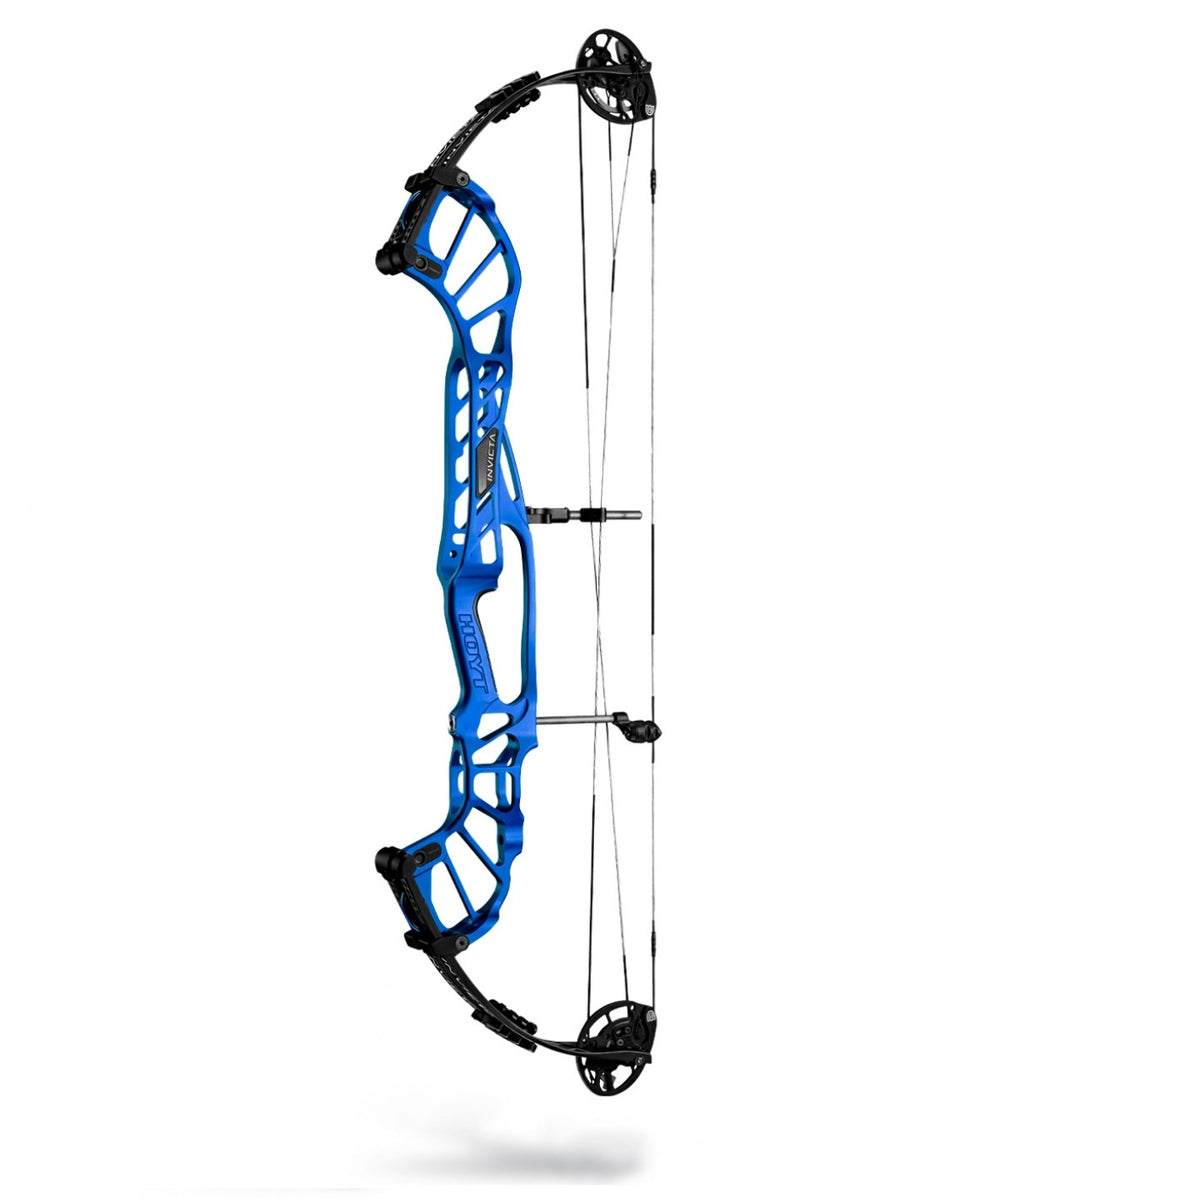 Hoyt Invicta 37 DCX cam in stock